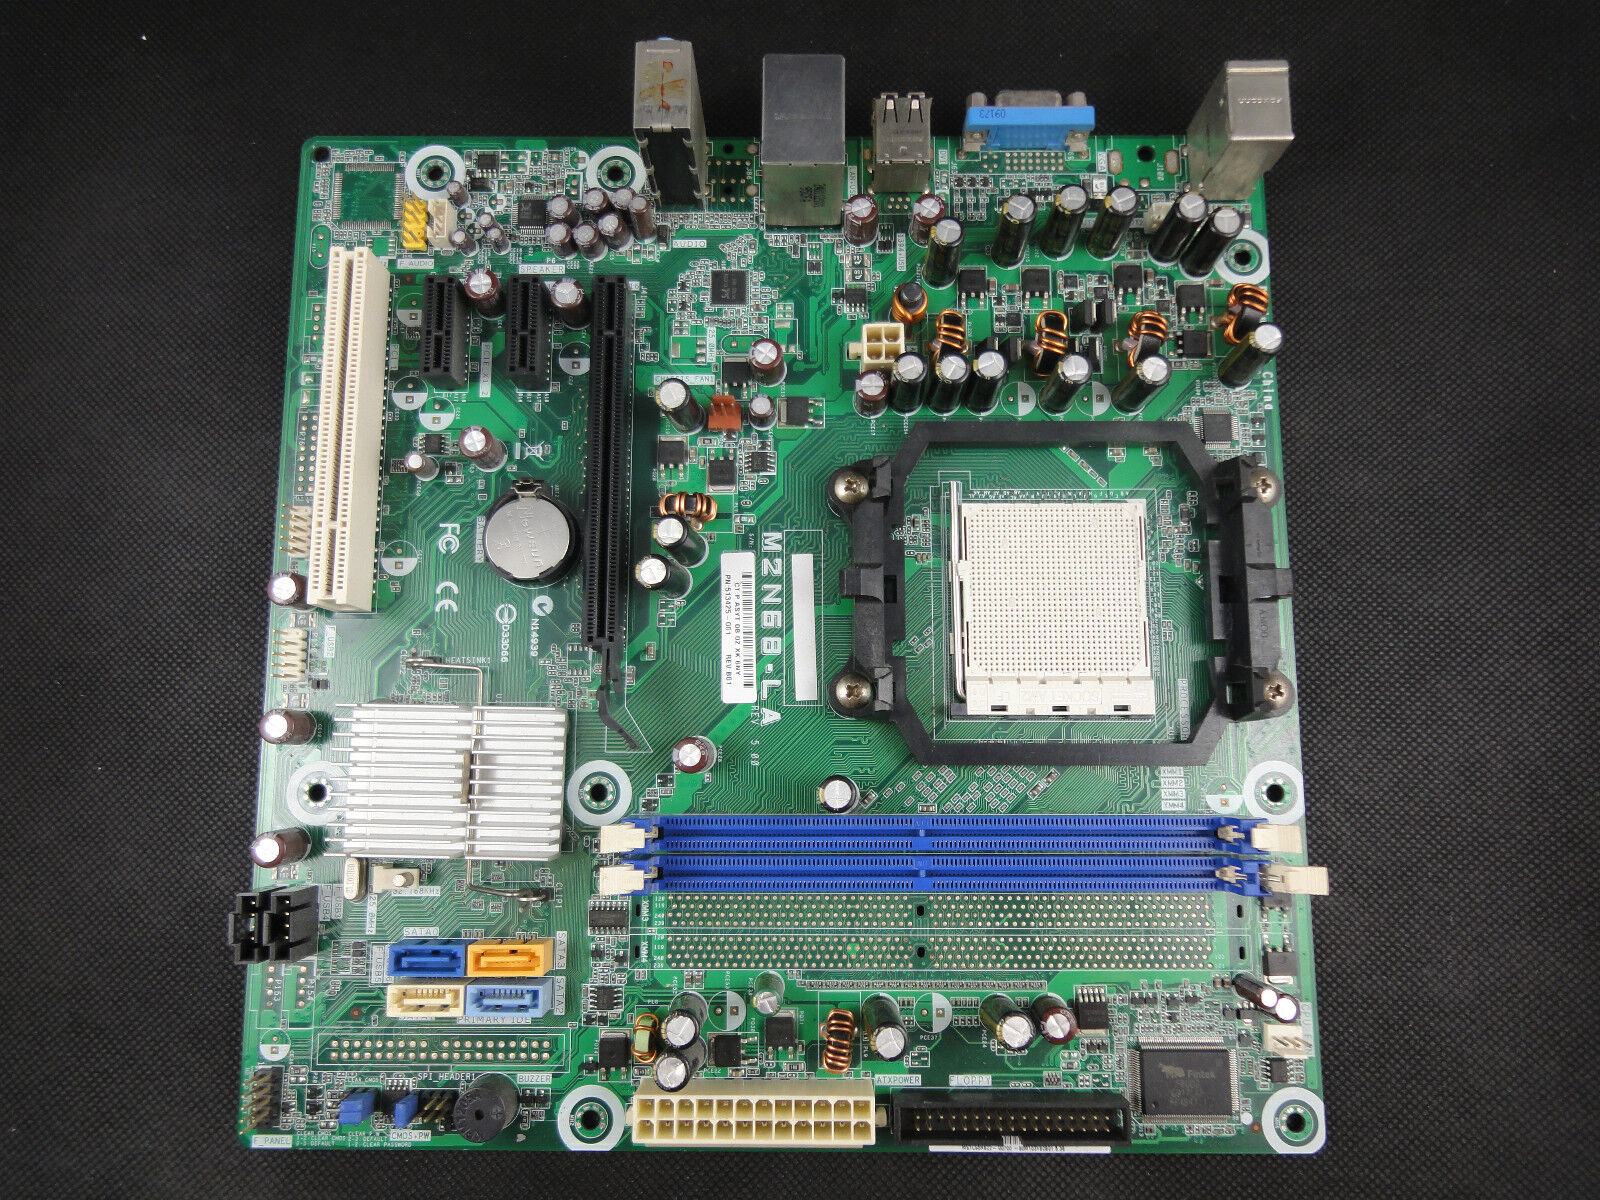 Just bought it today for hkd $ 399 ( $51 usd) with old geforce 6150se